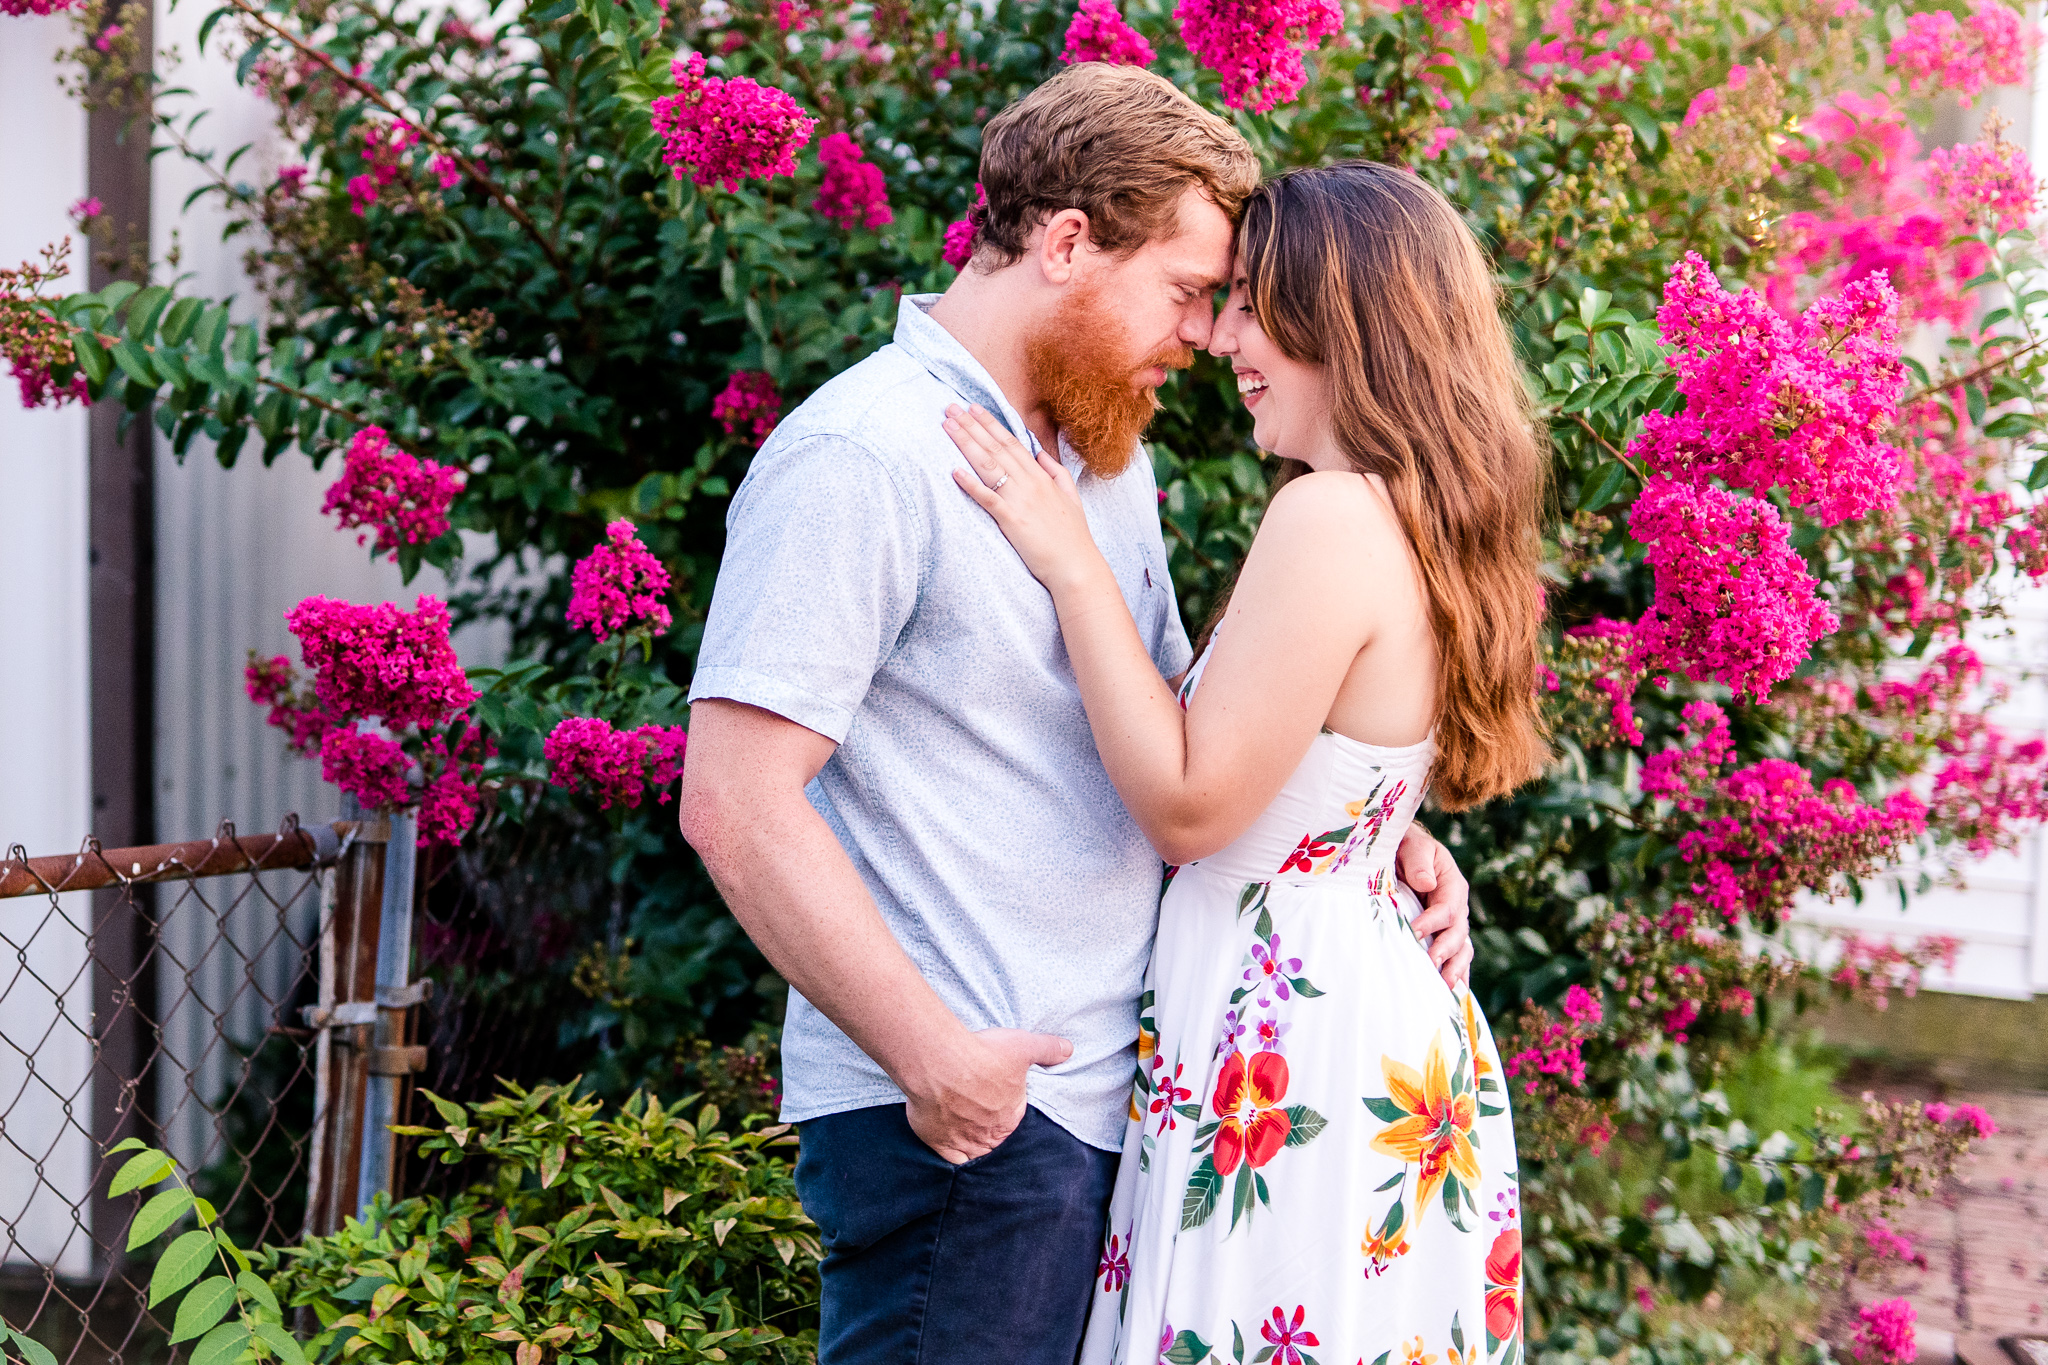 An engaged couple press their foreheads together and laugh during their summer sunset engagement session in Historic Occoquan, Northern Virginia